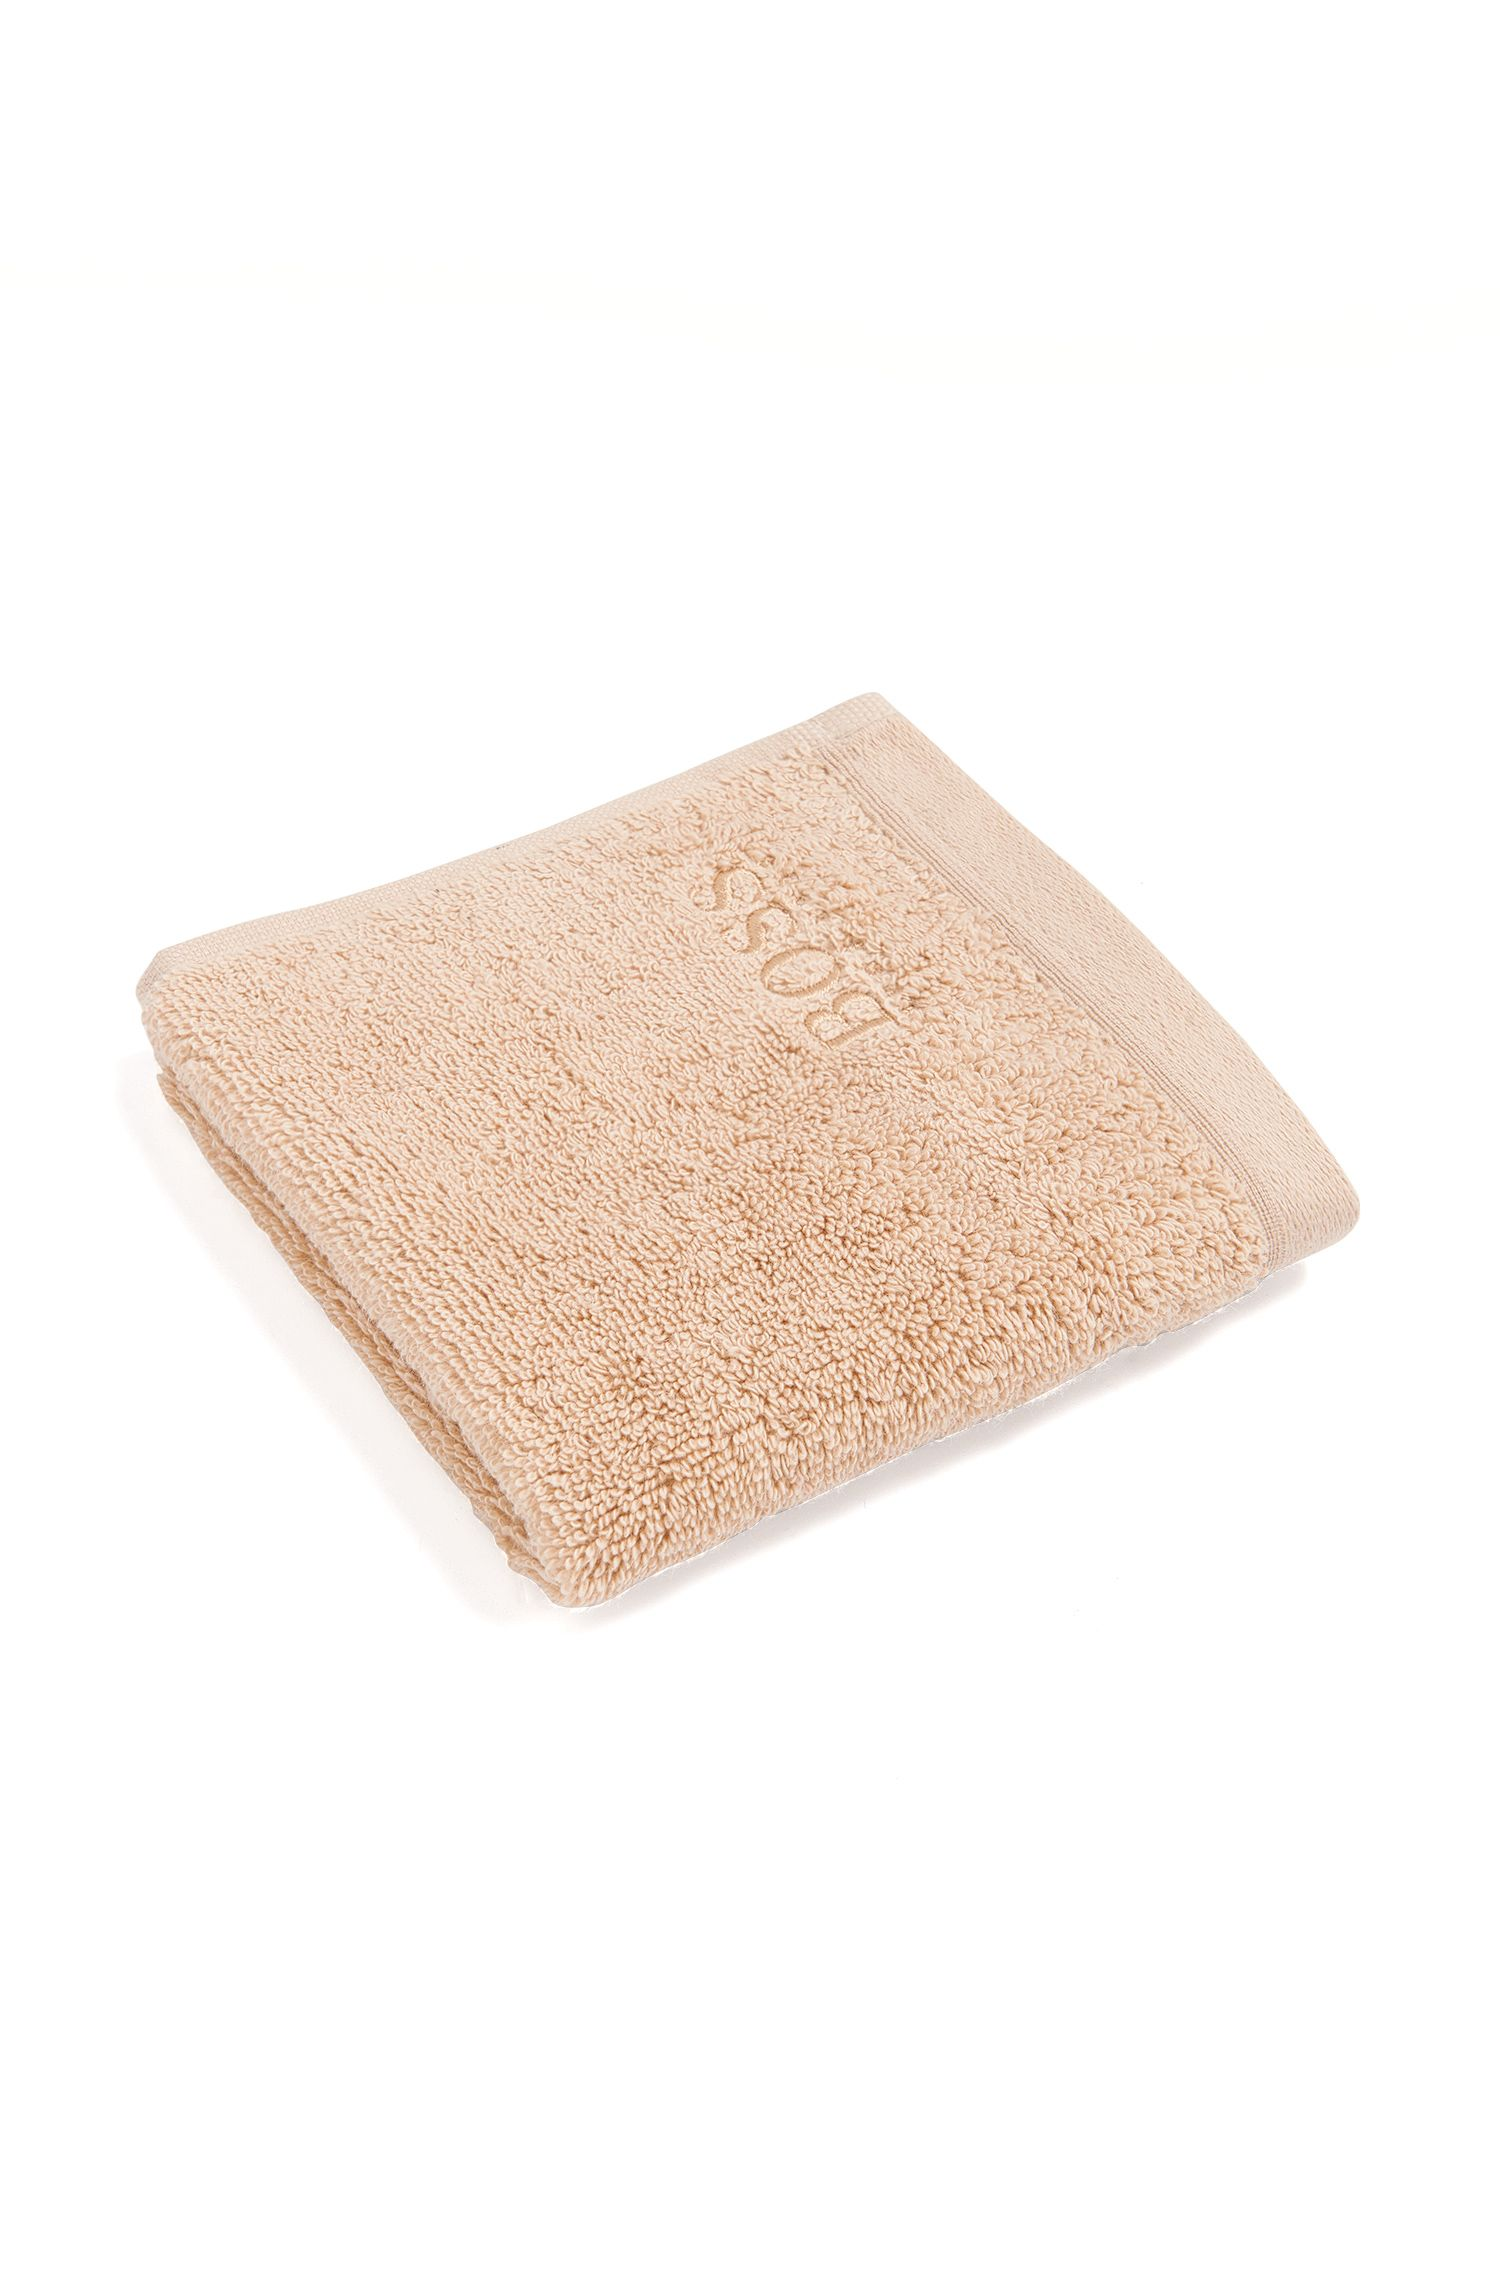 Washcloth 'LOFT Carre' in cotton terry